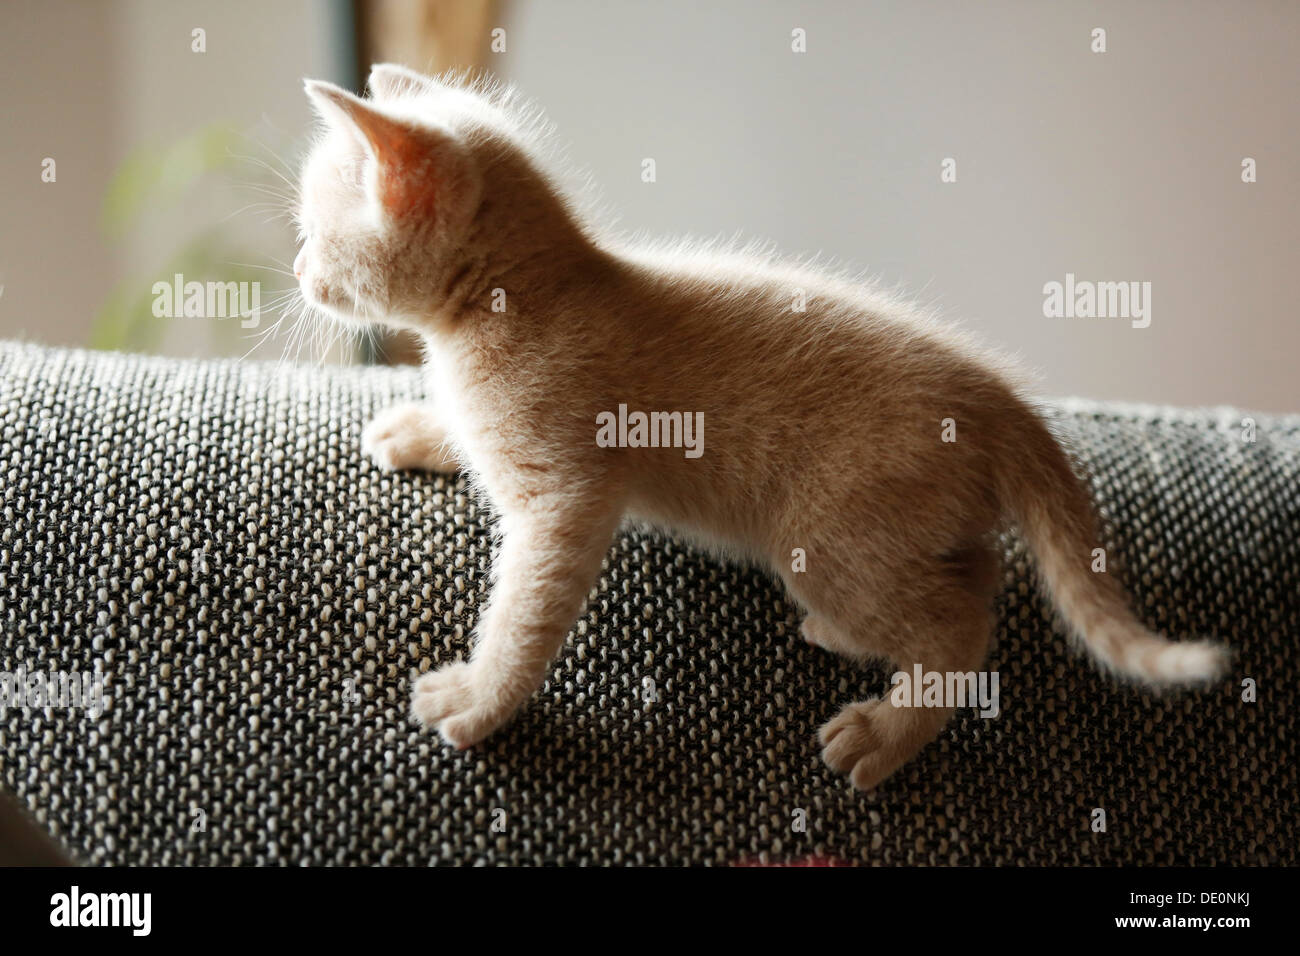 Kitten, 6 weeks, standing on a sofa - Stock Image